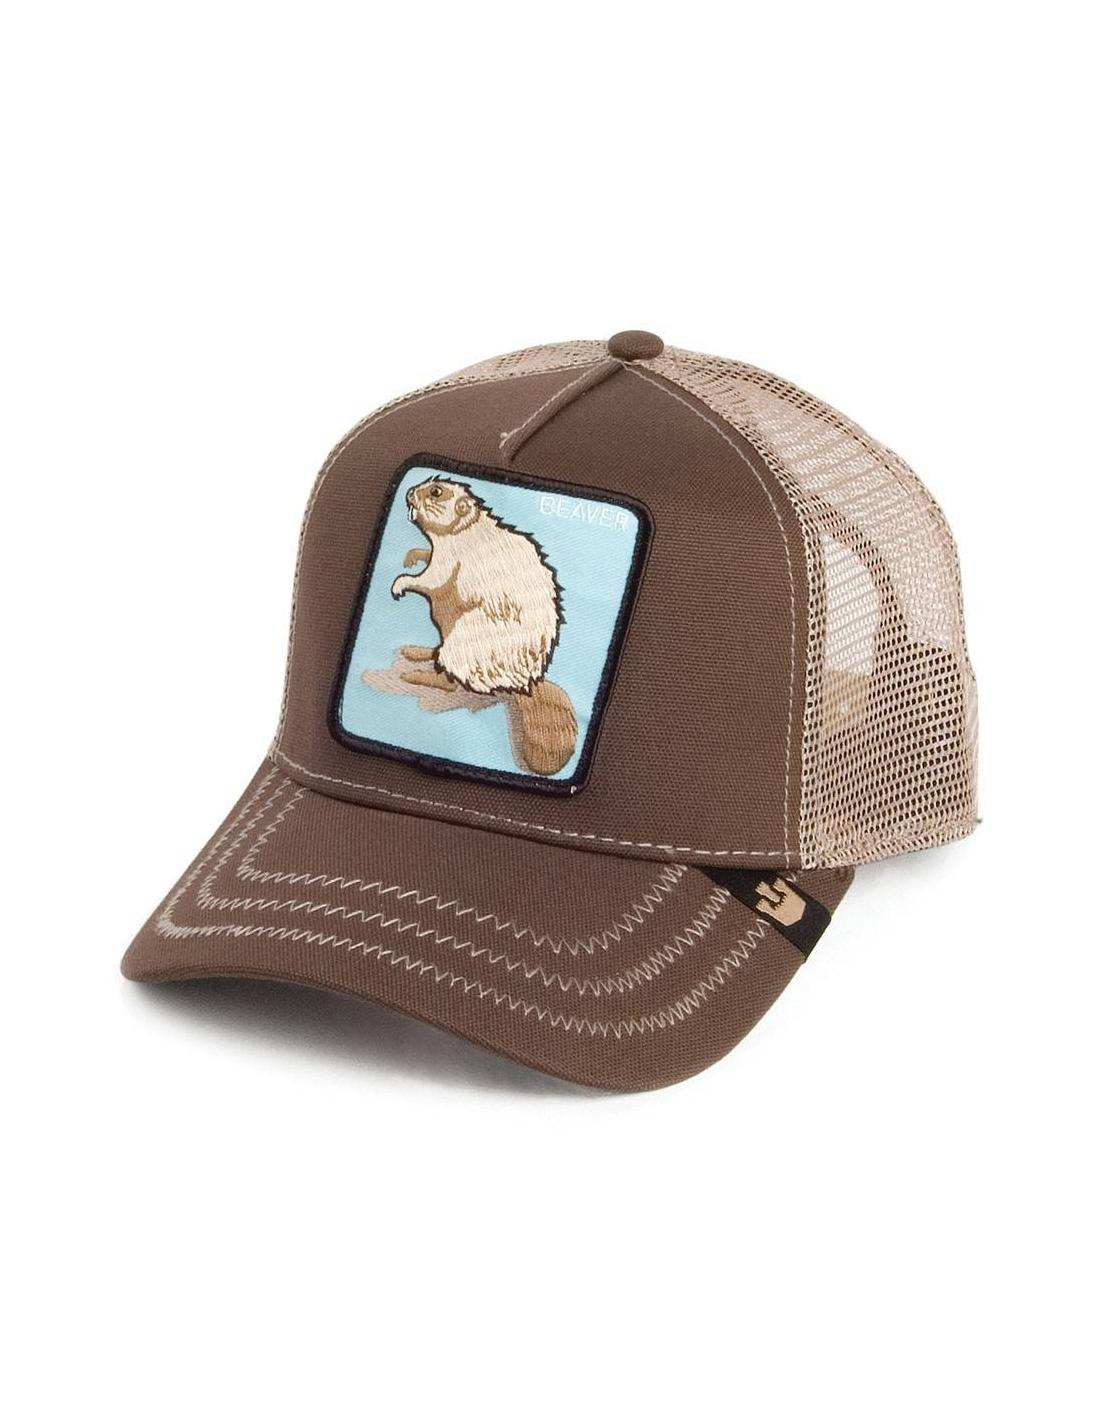 e549fa66 Goorin Bros Beaver Brown Animal Farm Trucker Hat